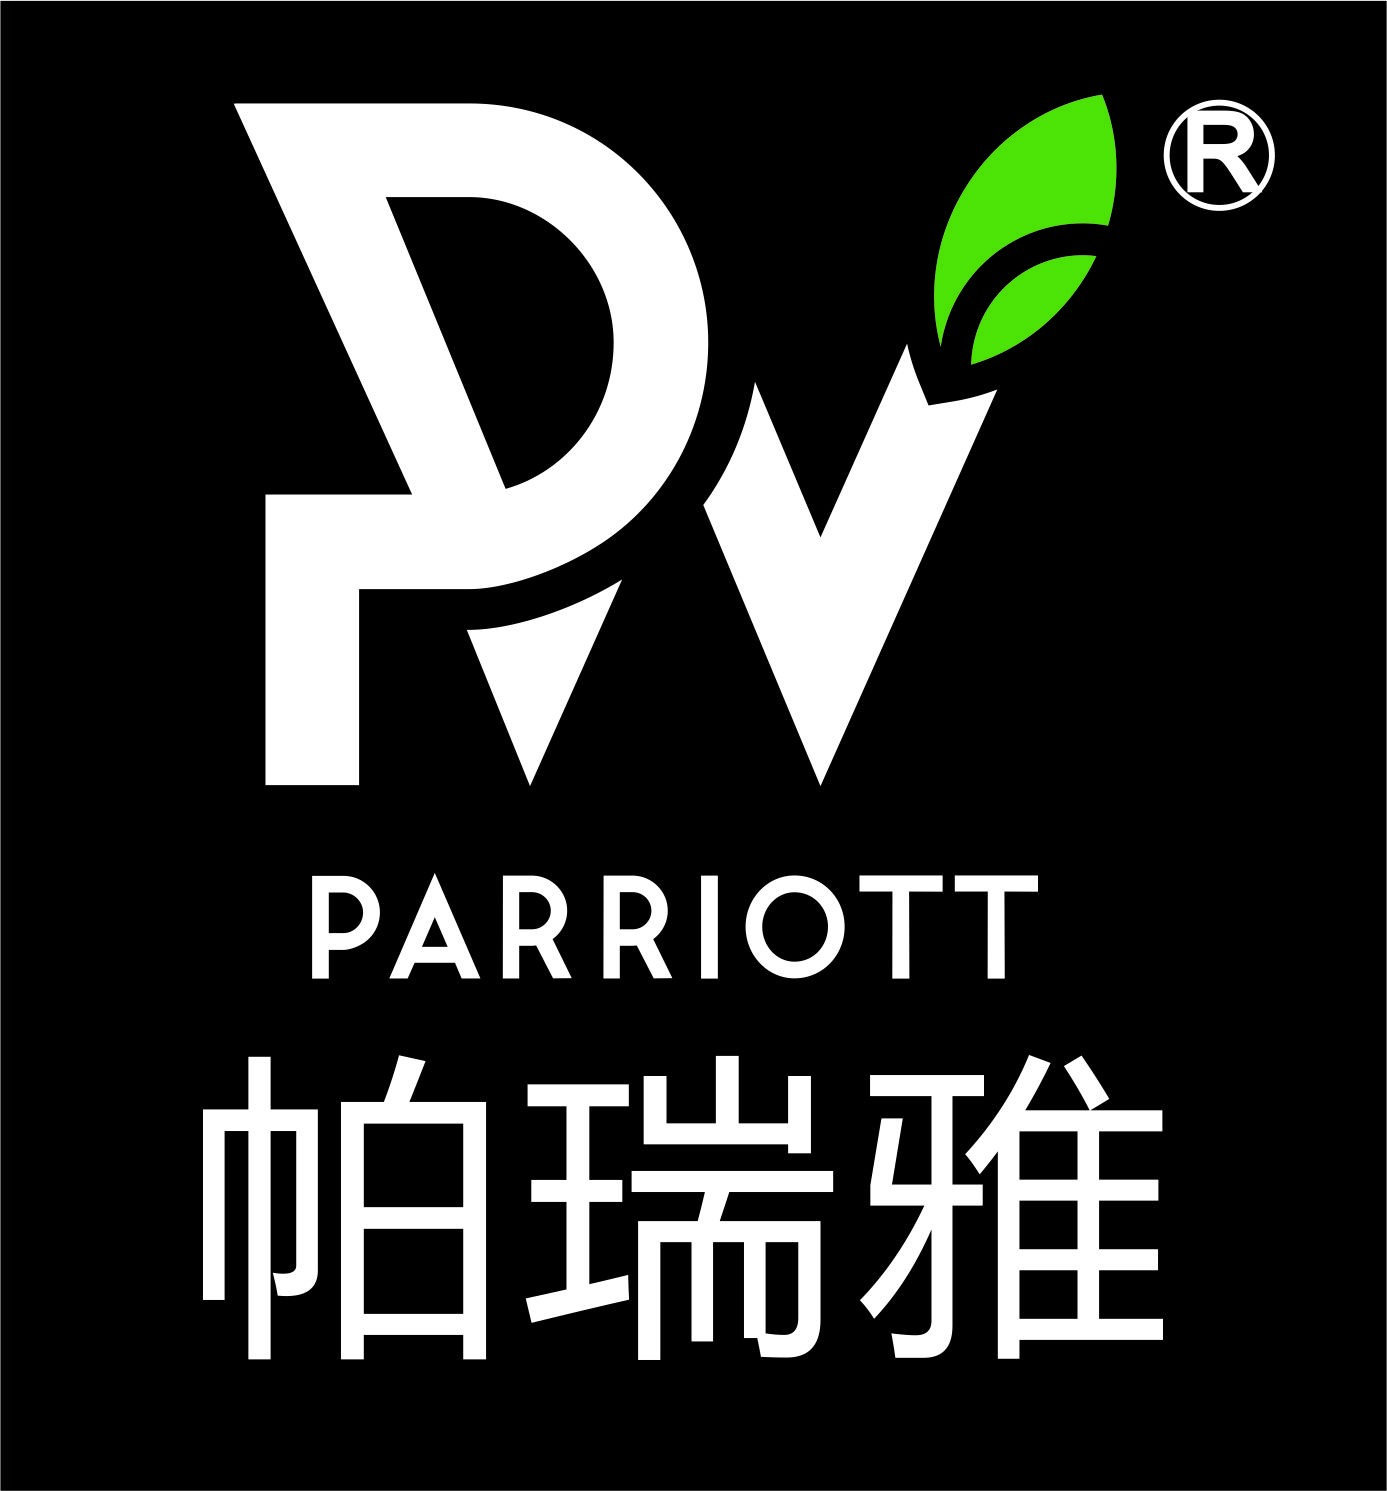 Parriott Group